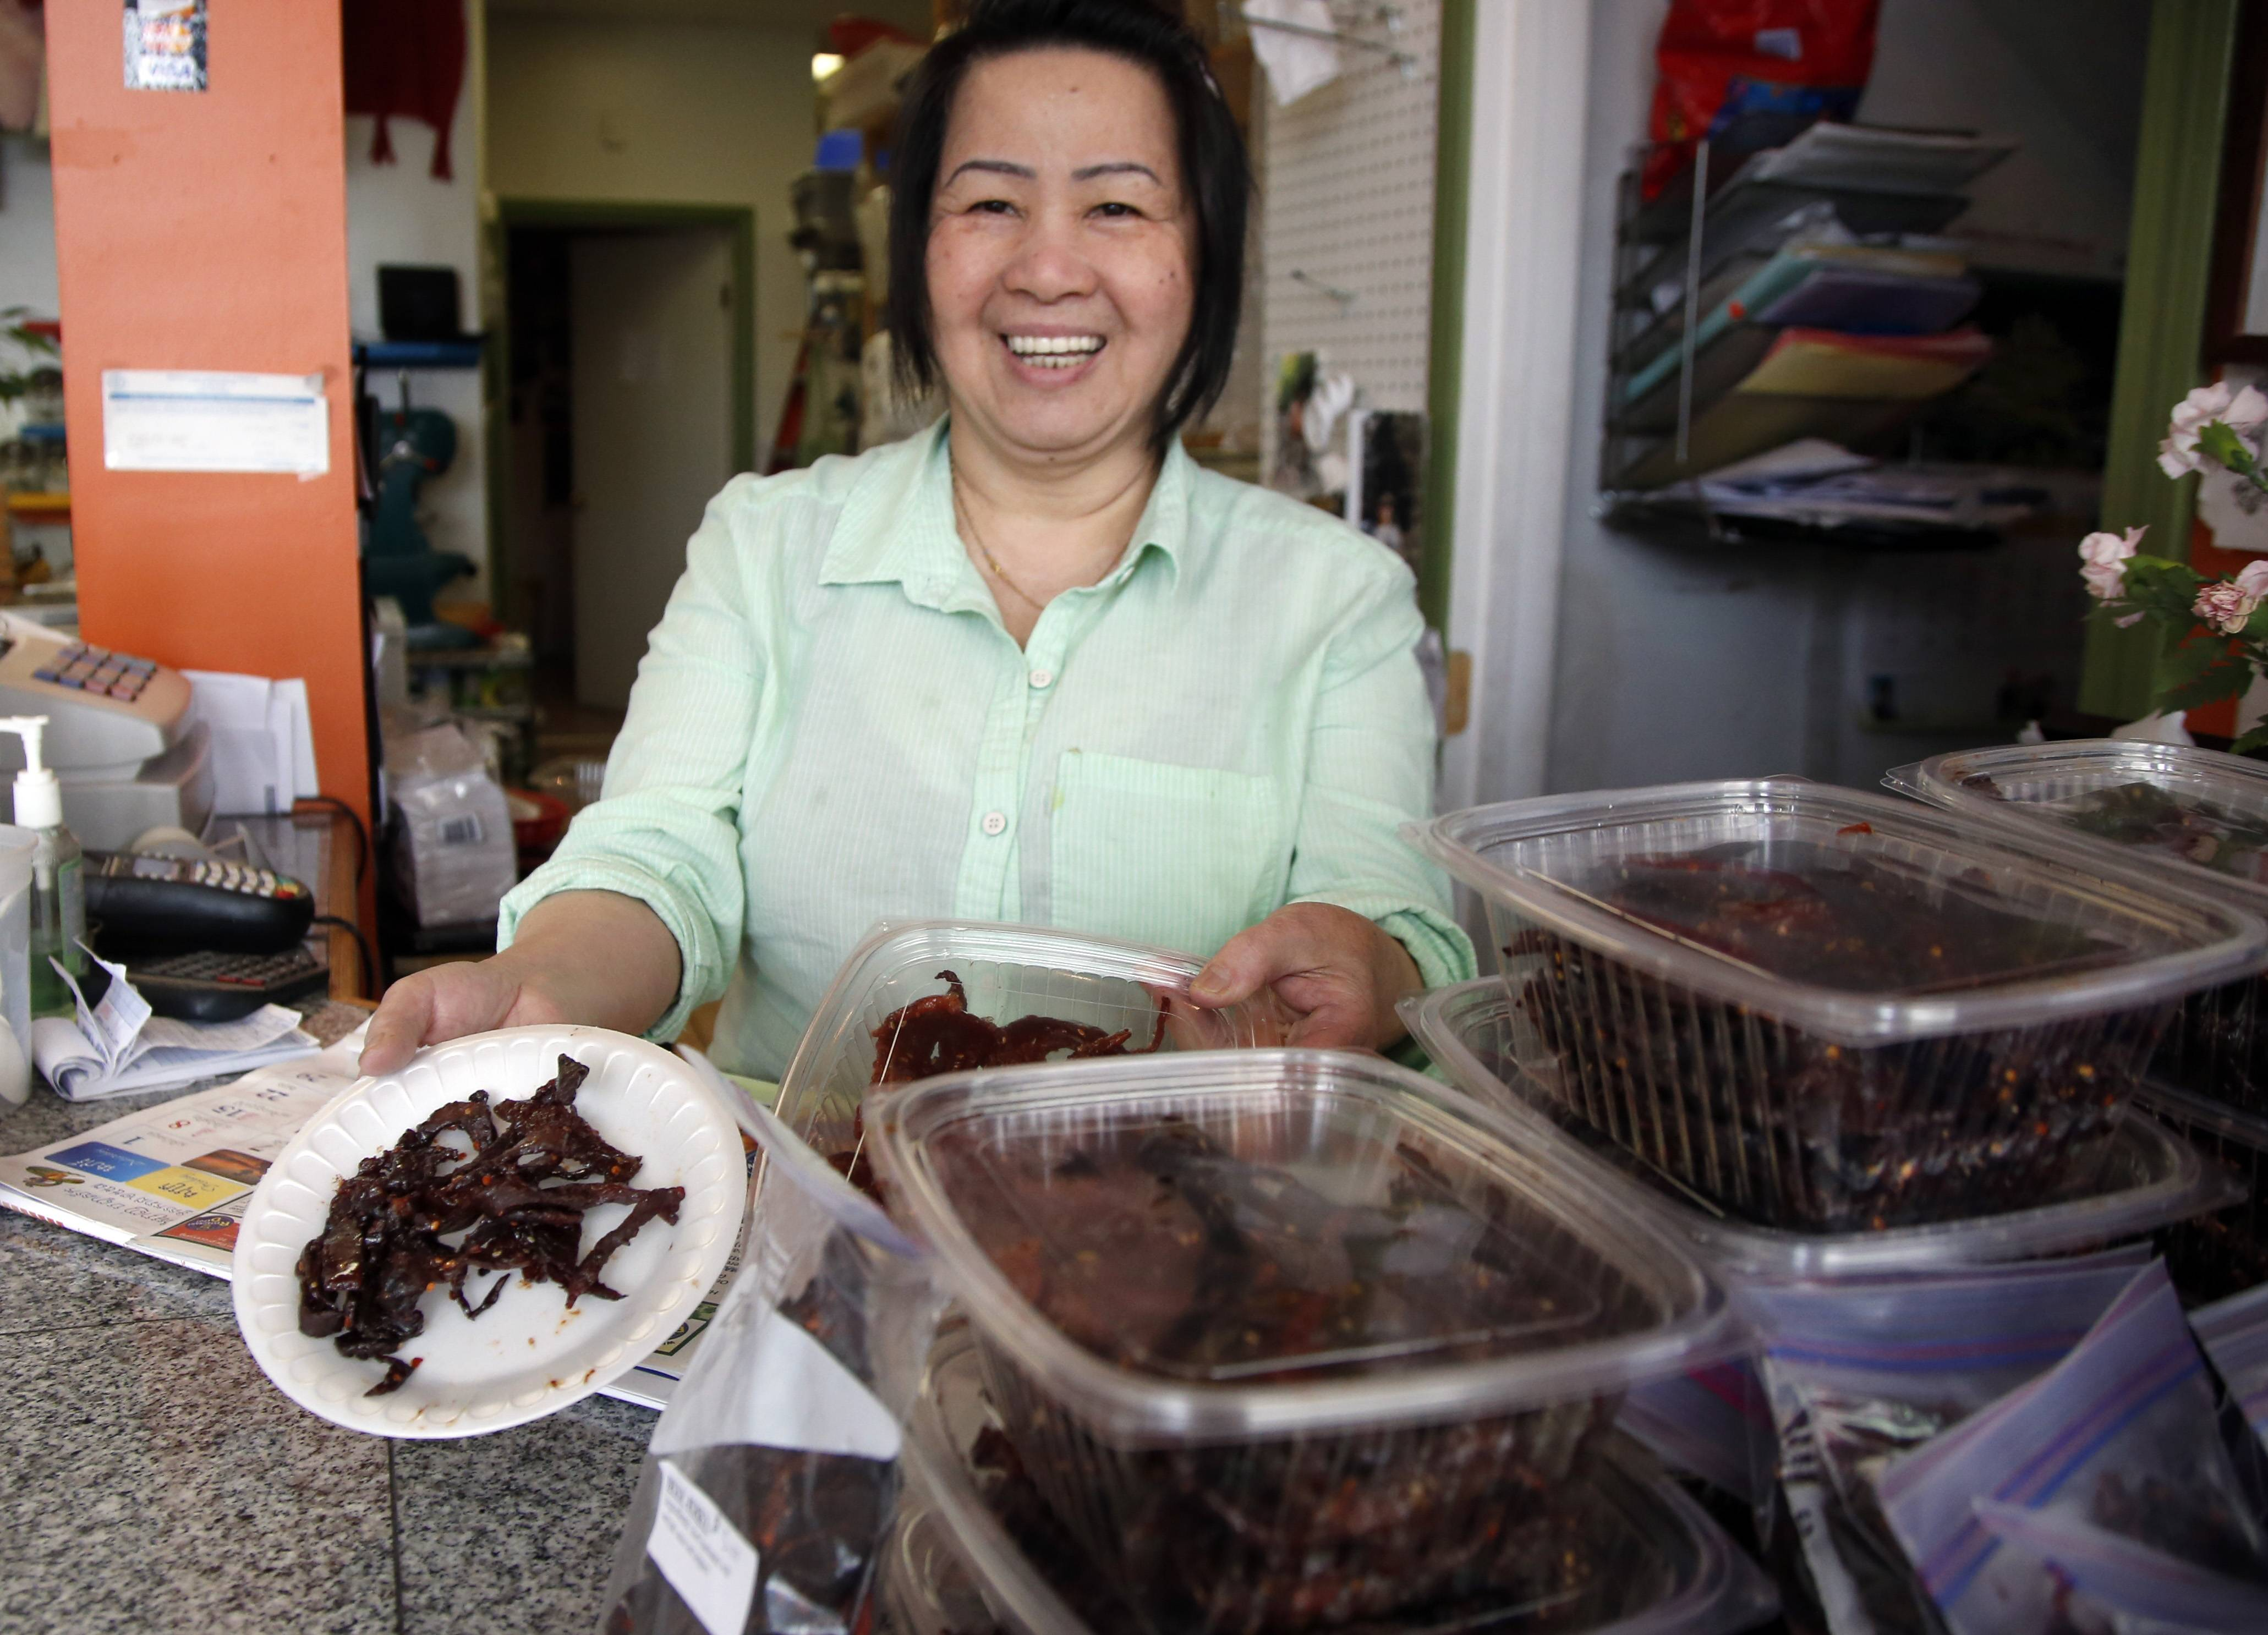 Kimheng Chou shows off her homemade beef jerky at the Dessert Shop and Bakery in Lowell, Mass.